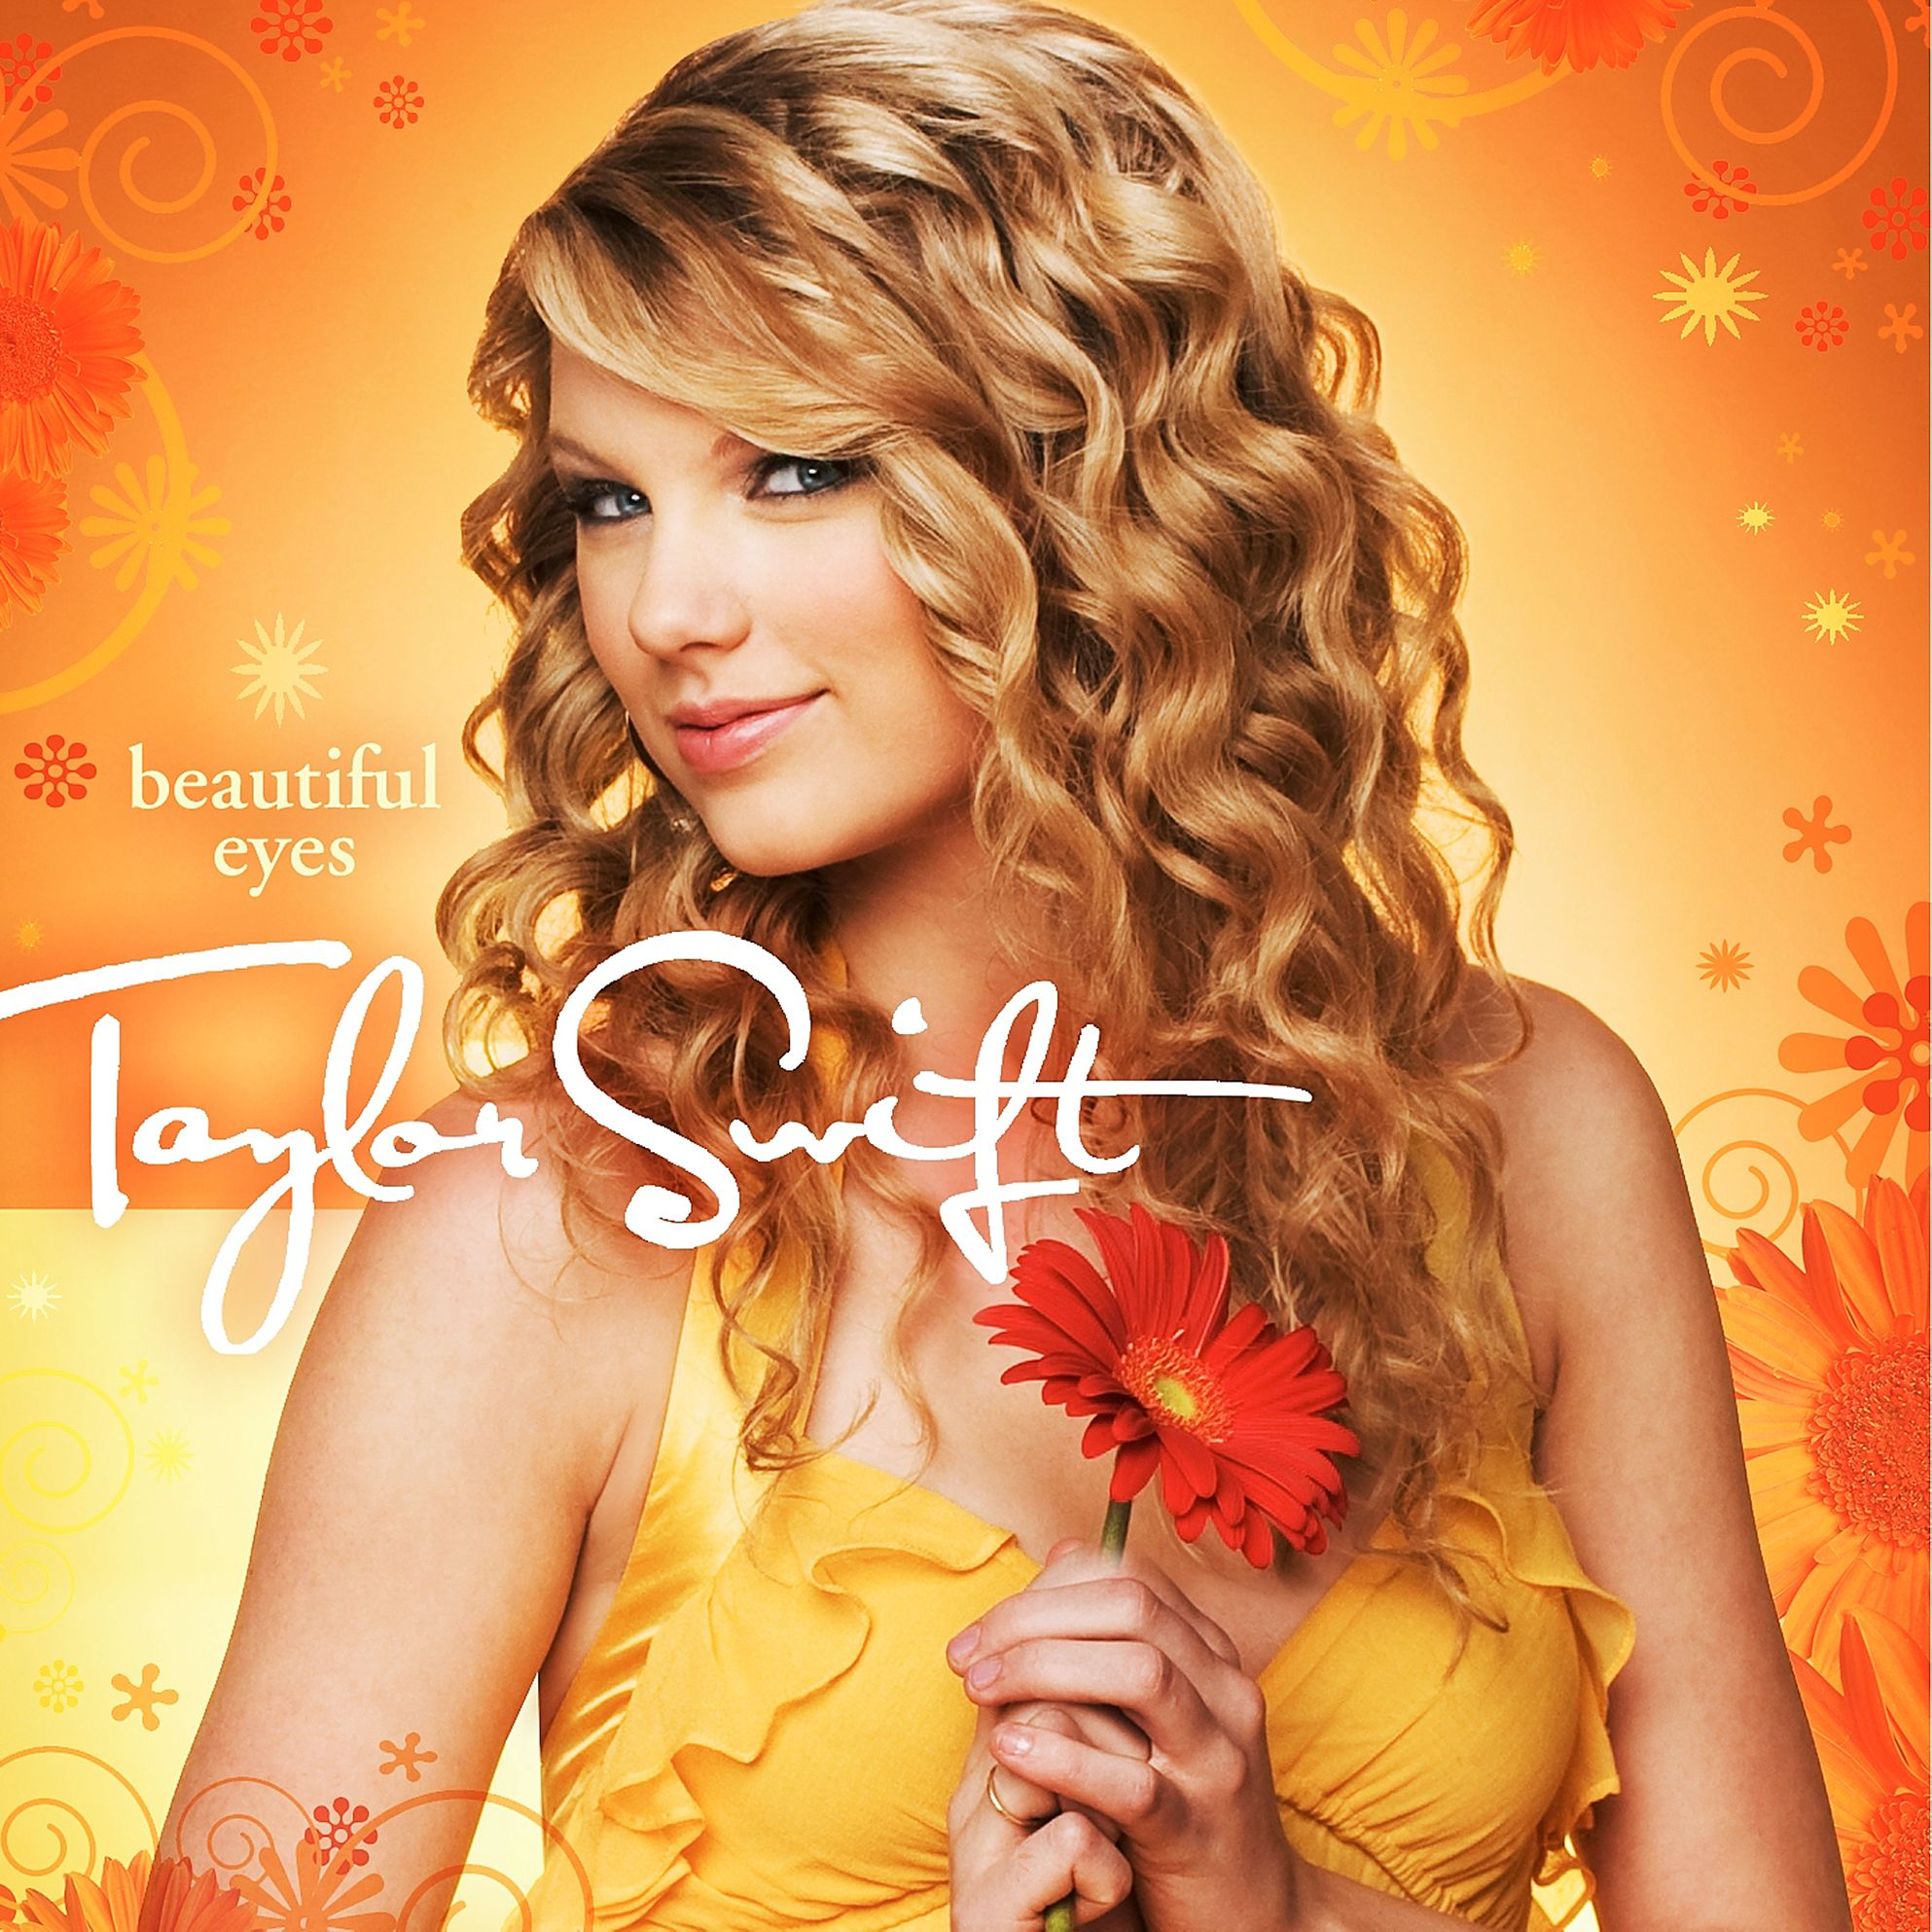 Beautiful Eyes by Taylor Swift (Big Machine, 2008)